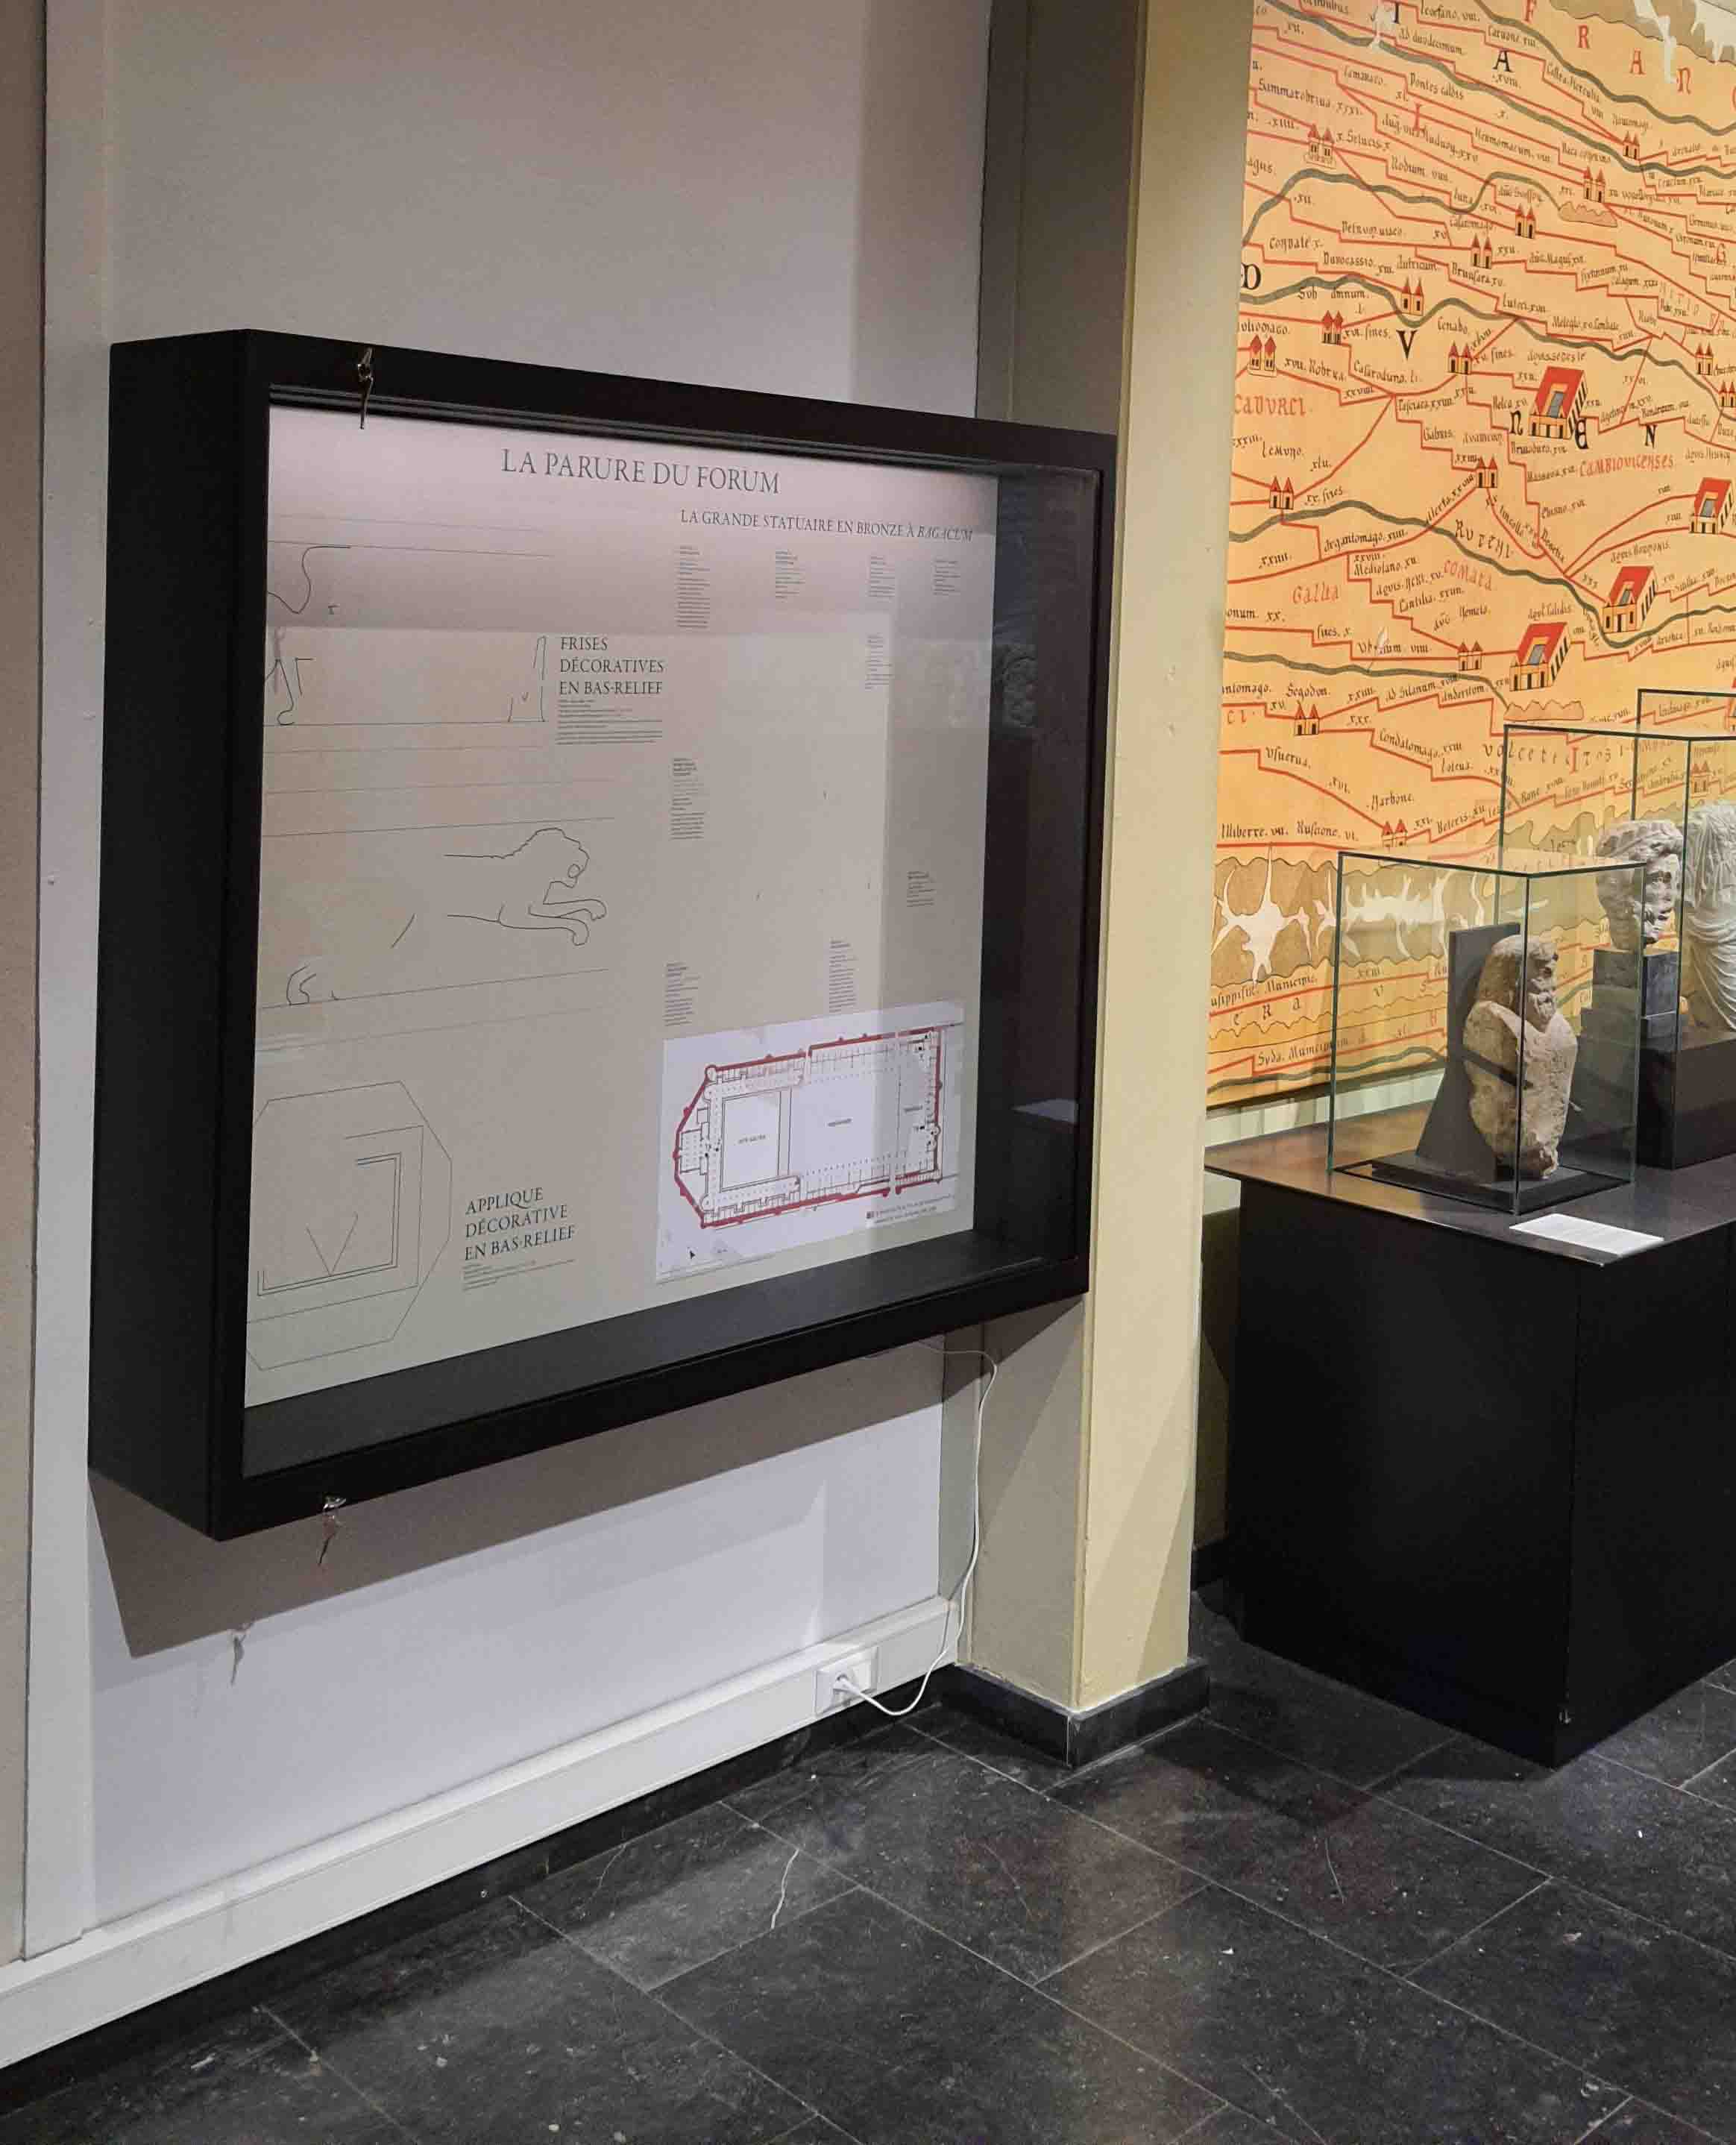 A new heritage showcase at the Bavay Antique Forum